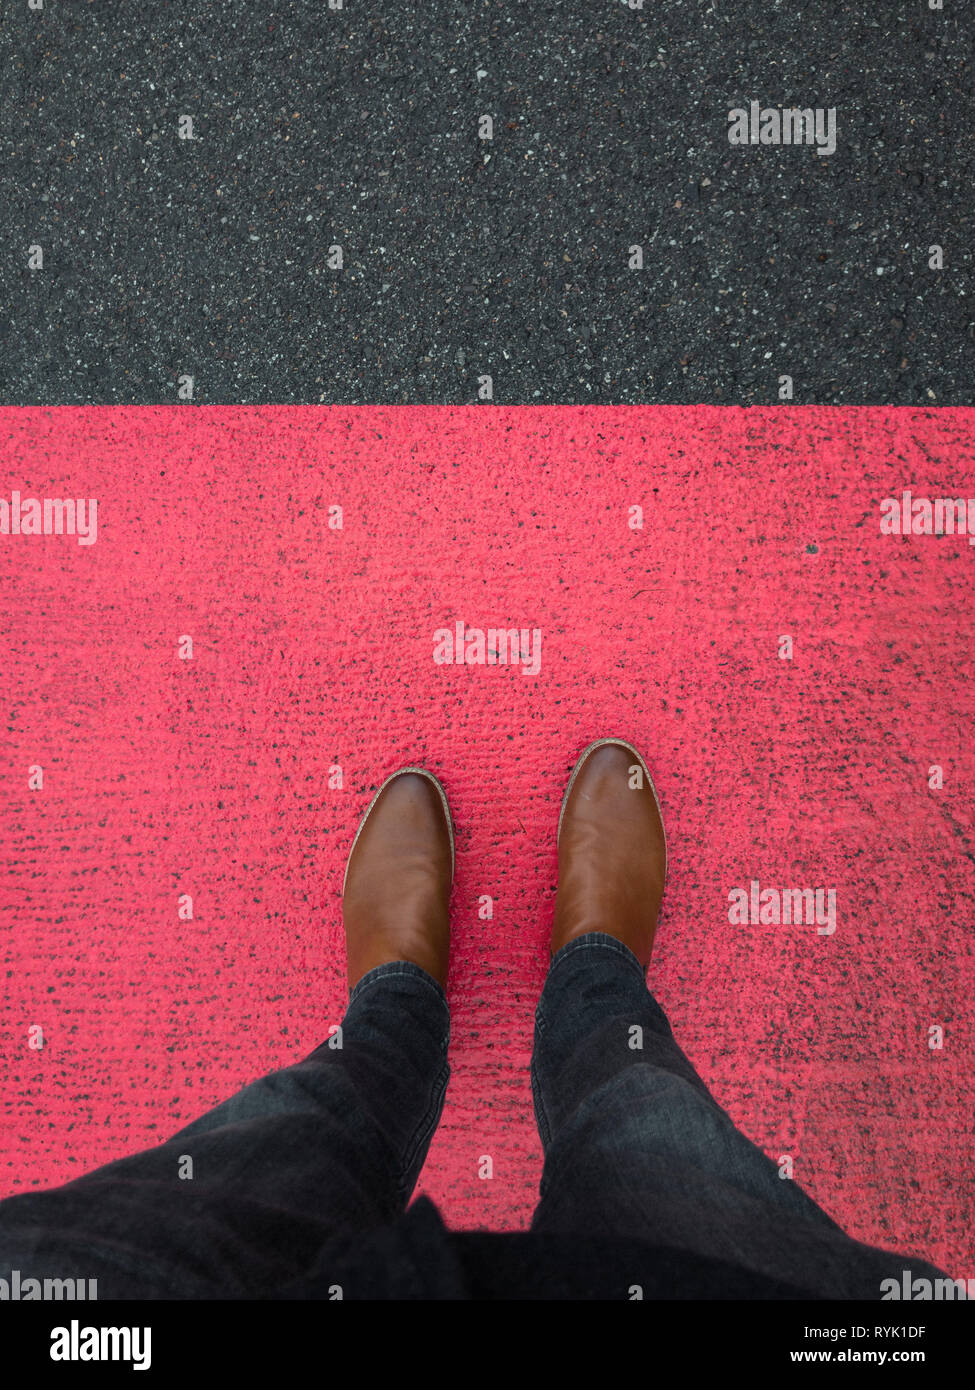 red marking on pavement with leather shoe - Stock Image